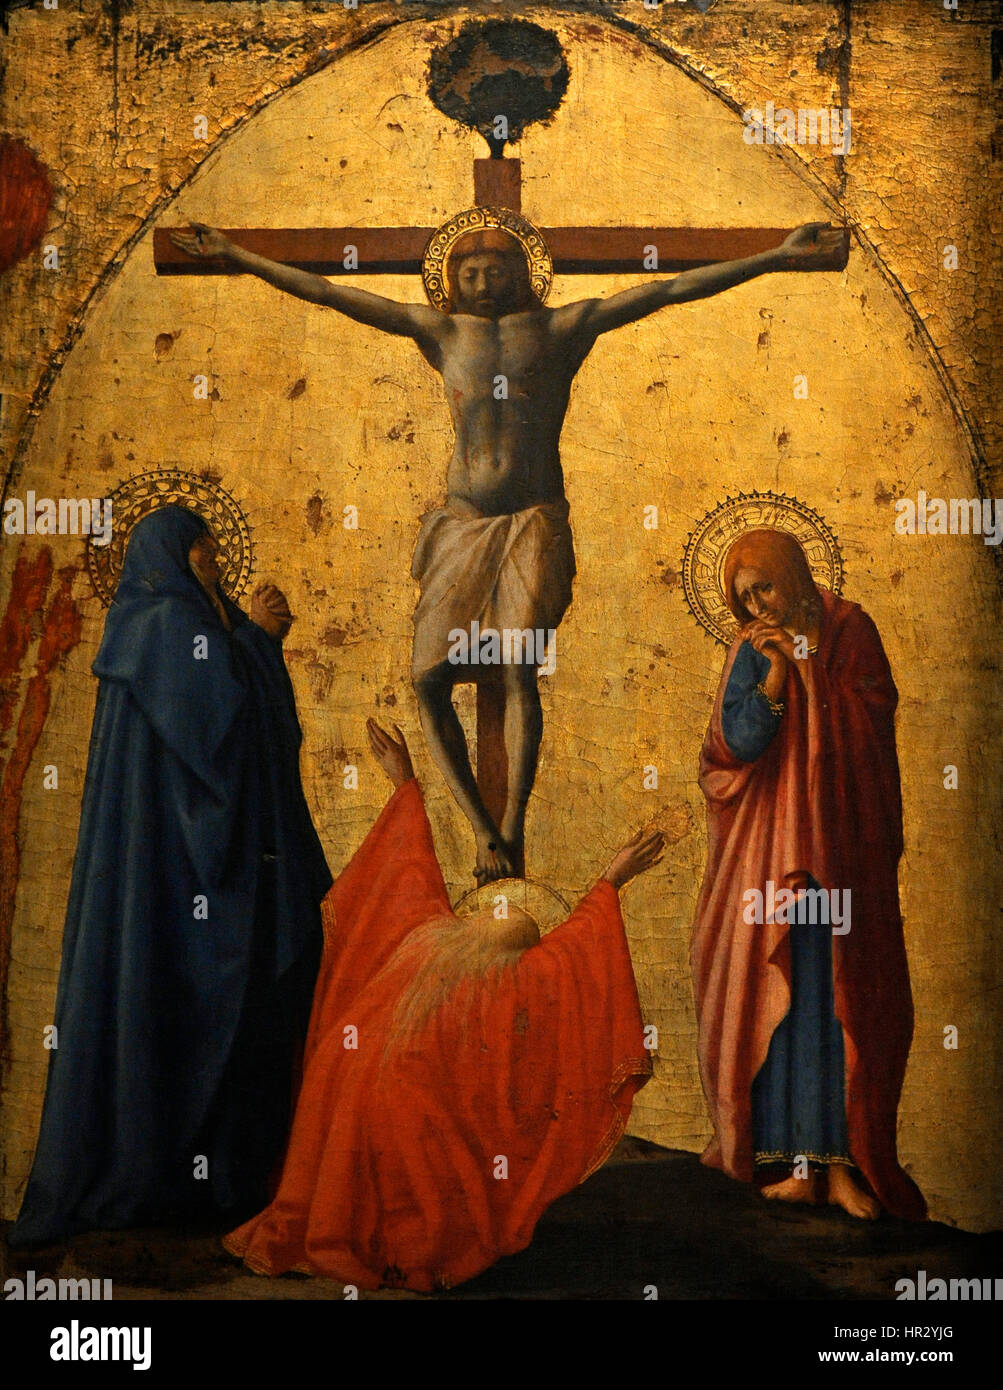 Masaccio, Tommaso di ser Giovanni di Mone Cassai, called (1401-1428).  Italian painter. Crucifixion, 1426. National Museum of Capodimonte. Naples.  Italy.